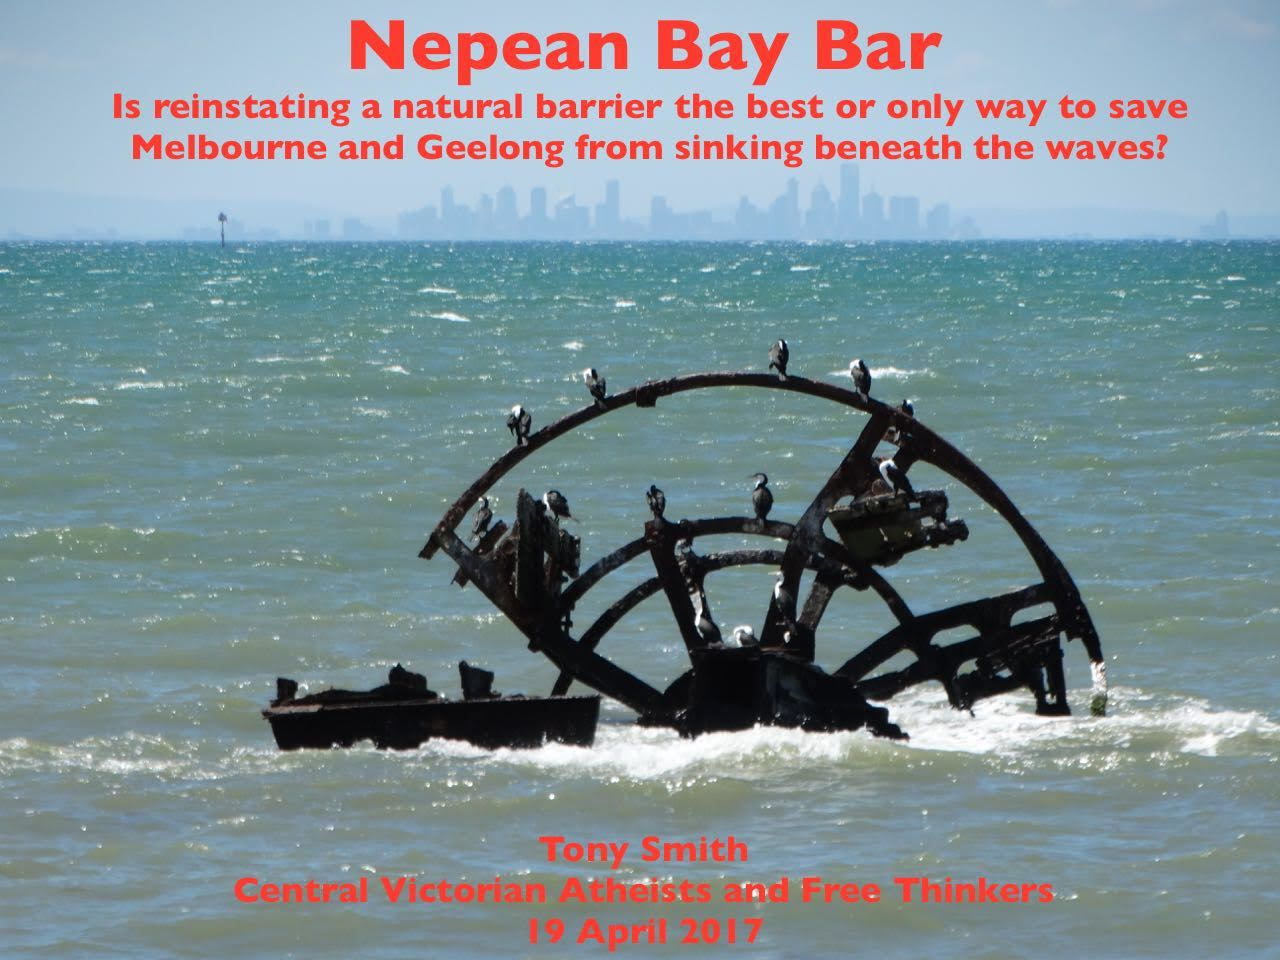 Central Victorian Atheists and Freethinkers Gathering